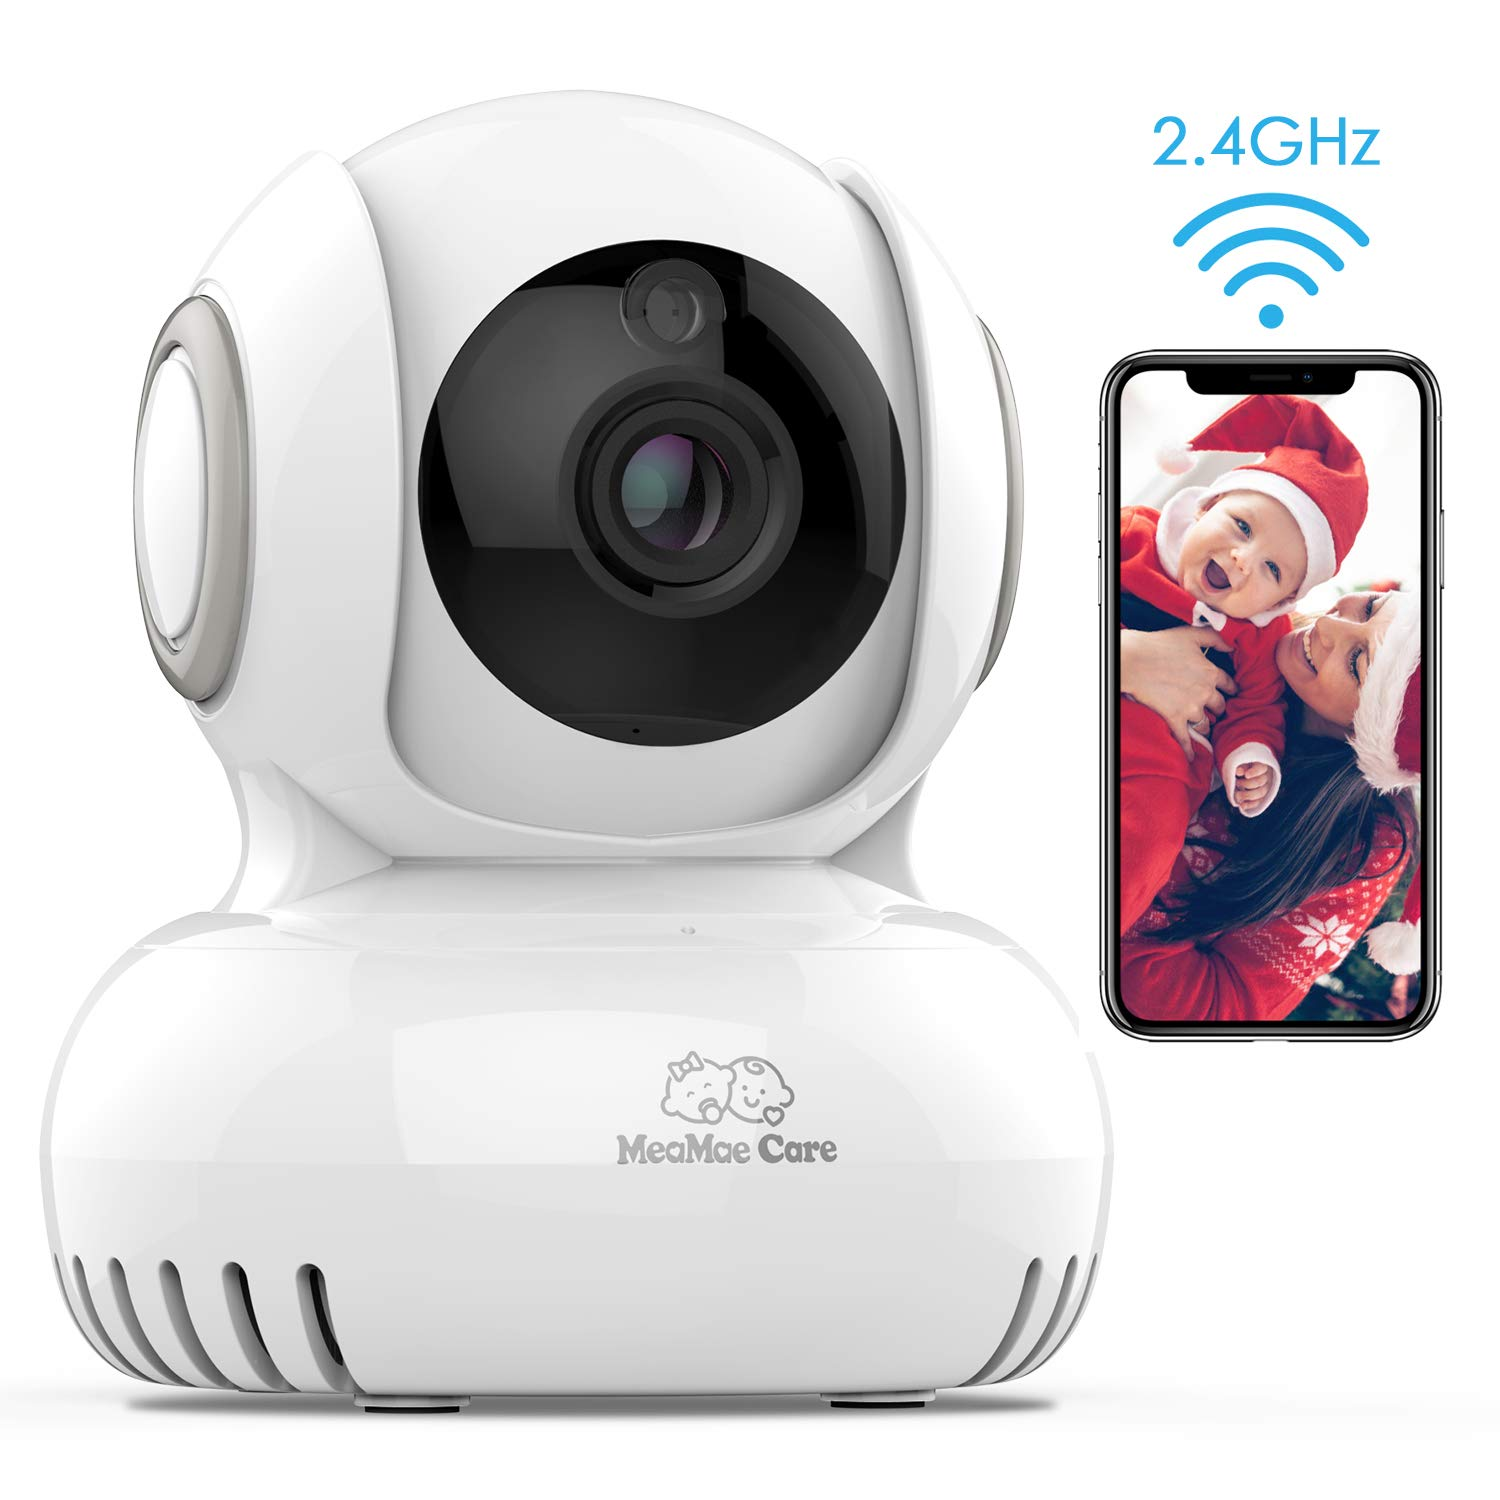 WiFi Baby Monitor with Camera and Audio - Lullabies, Home Security 2.4G WiFi Camera for Nanny/Elder/Pet with 2-Way Audio, Night Vision, Motion & Temperature Sensors, Pan/Title/Zoom, iOS/Android